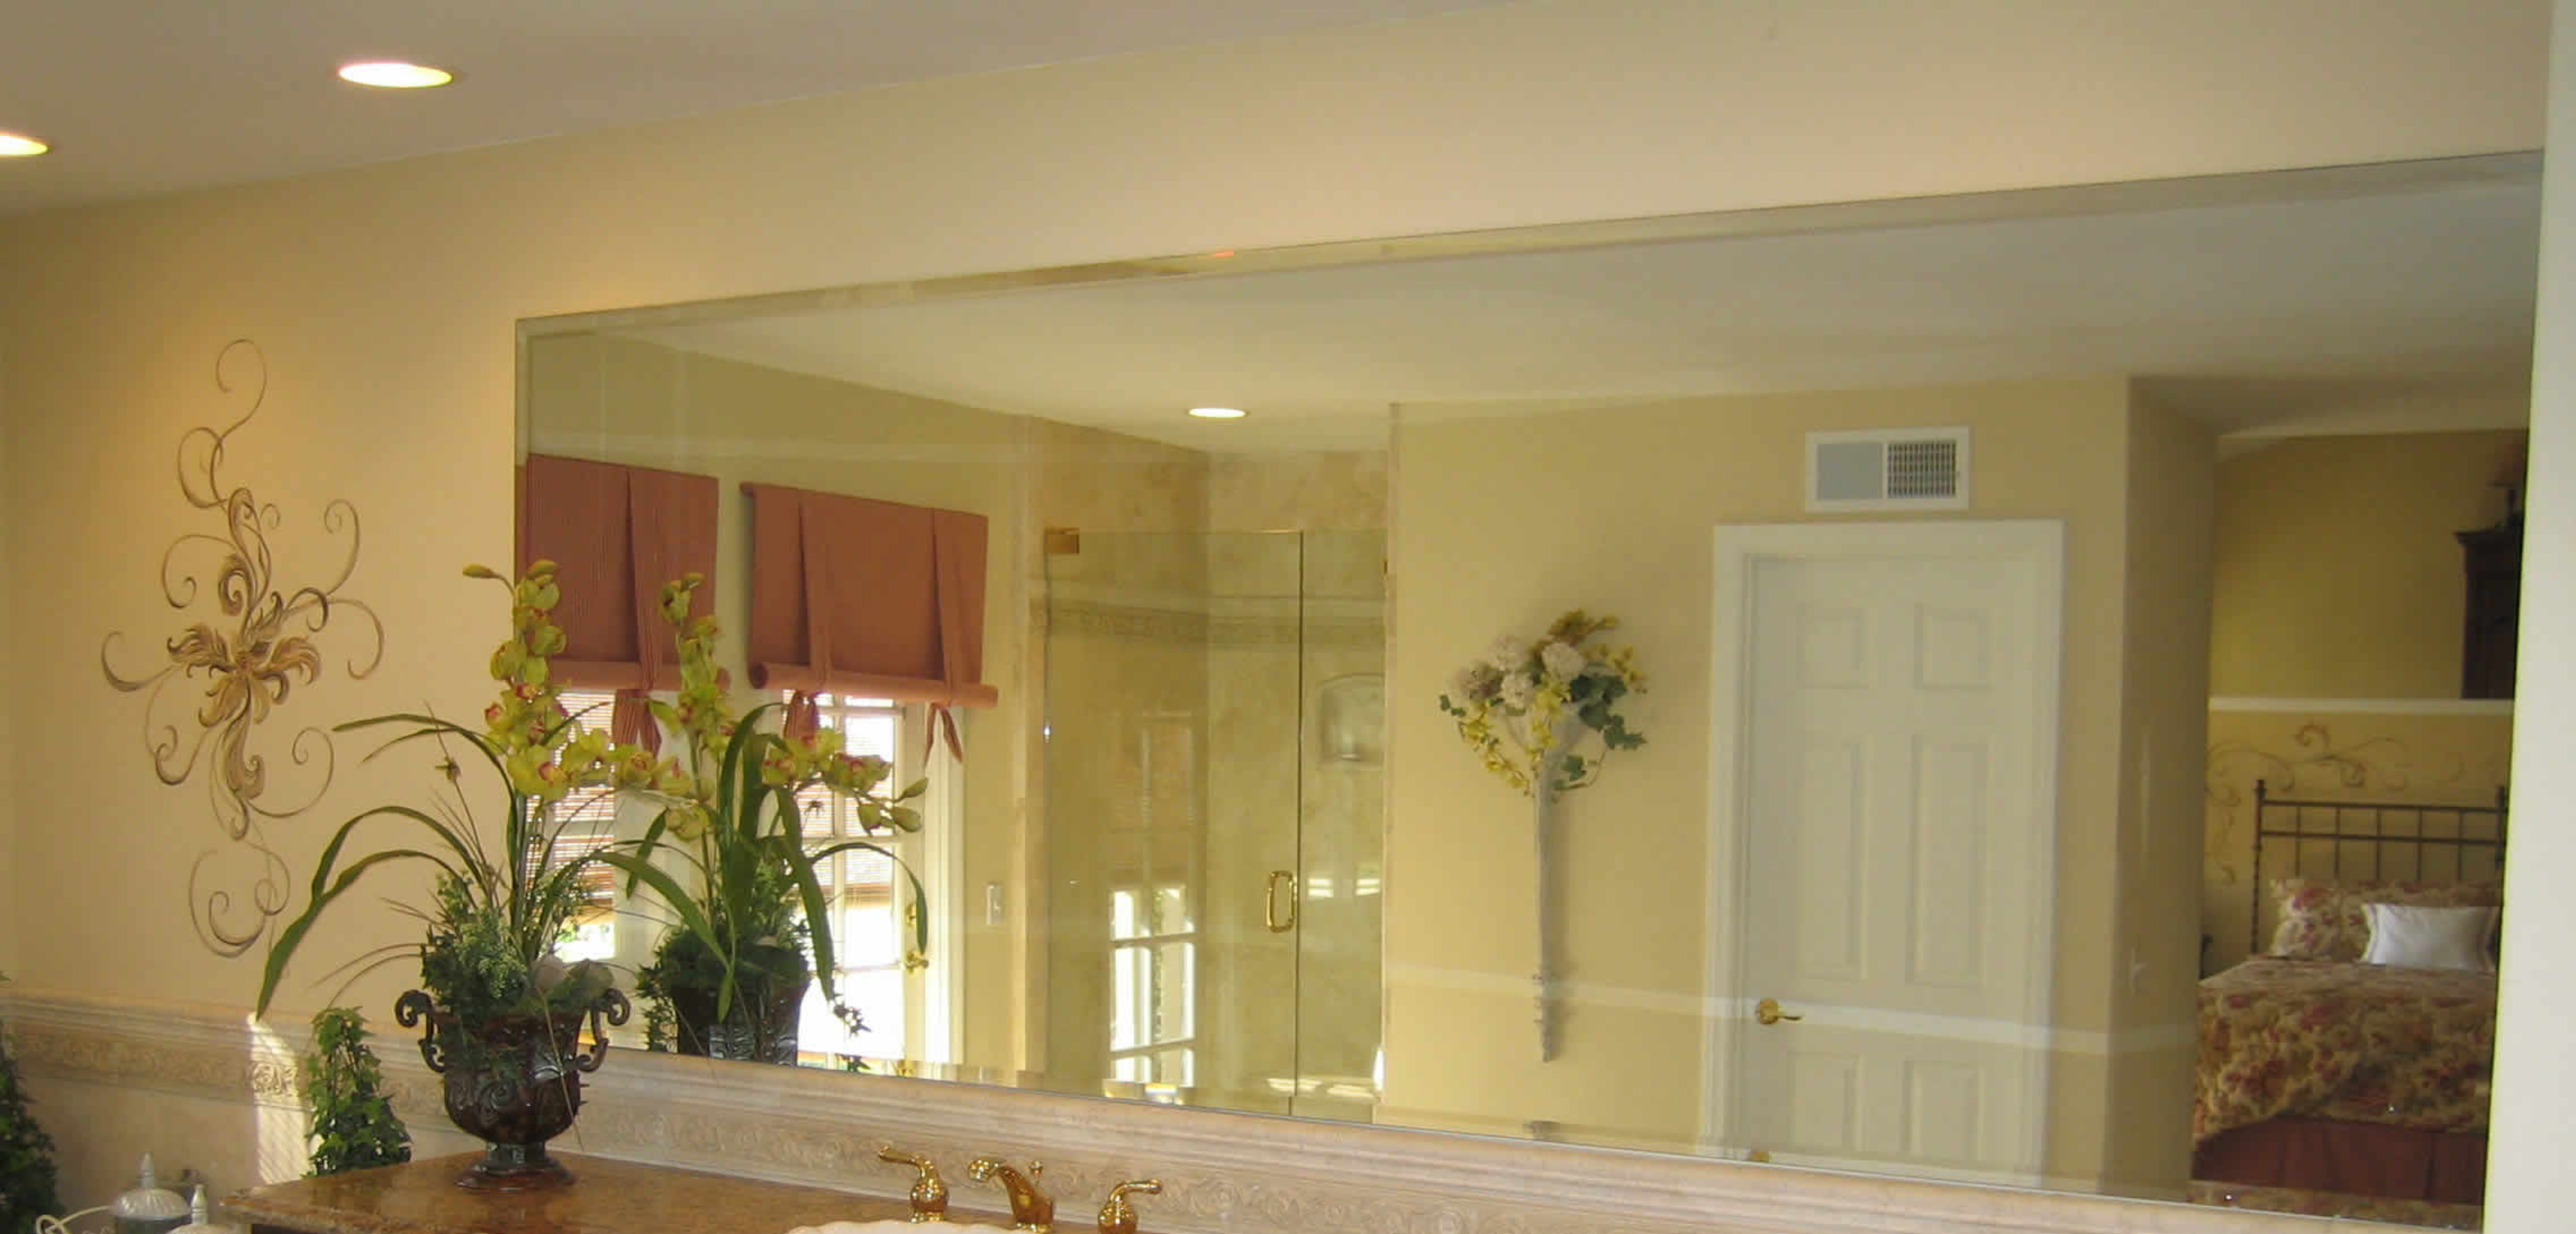 http://glass.com.ng/wp-content/uploads/2017/03/Mirror glass buy glass online